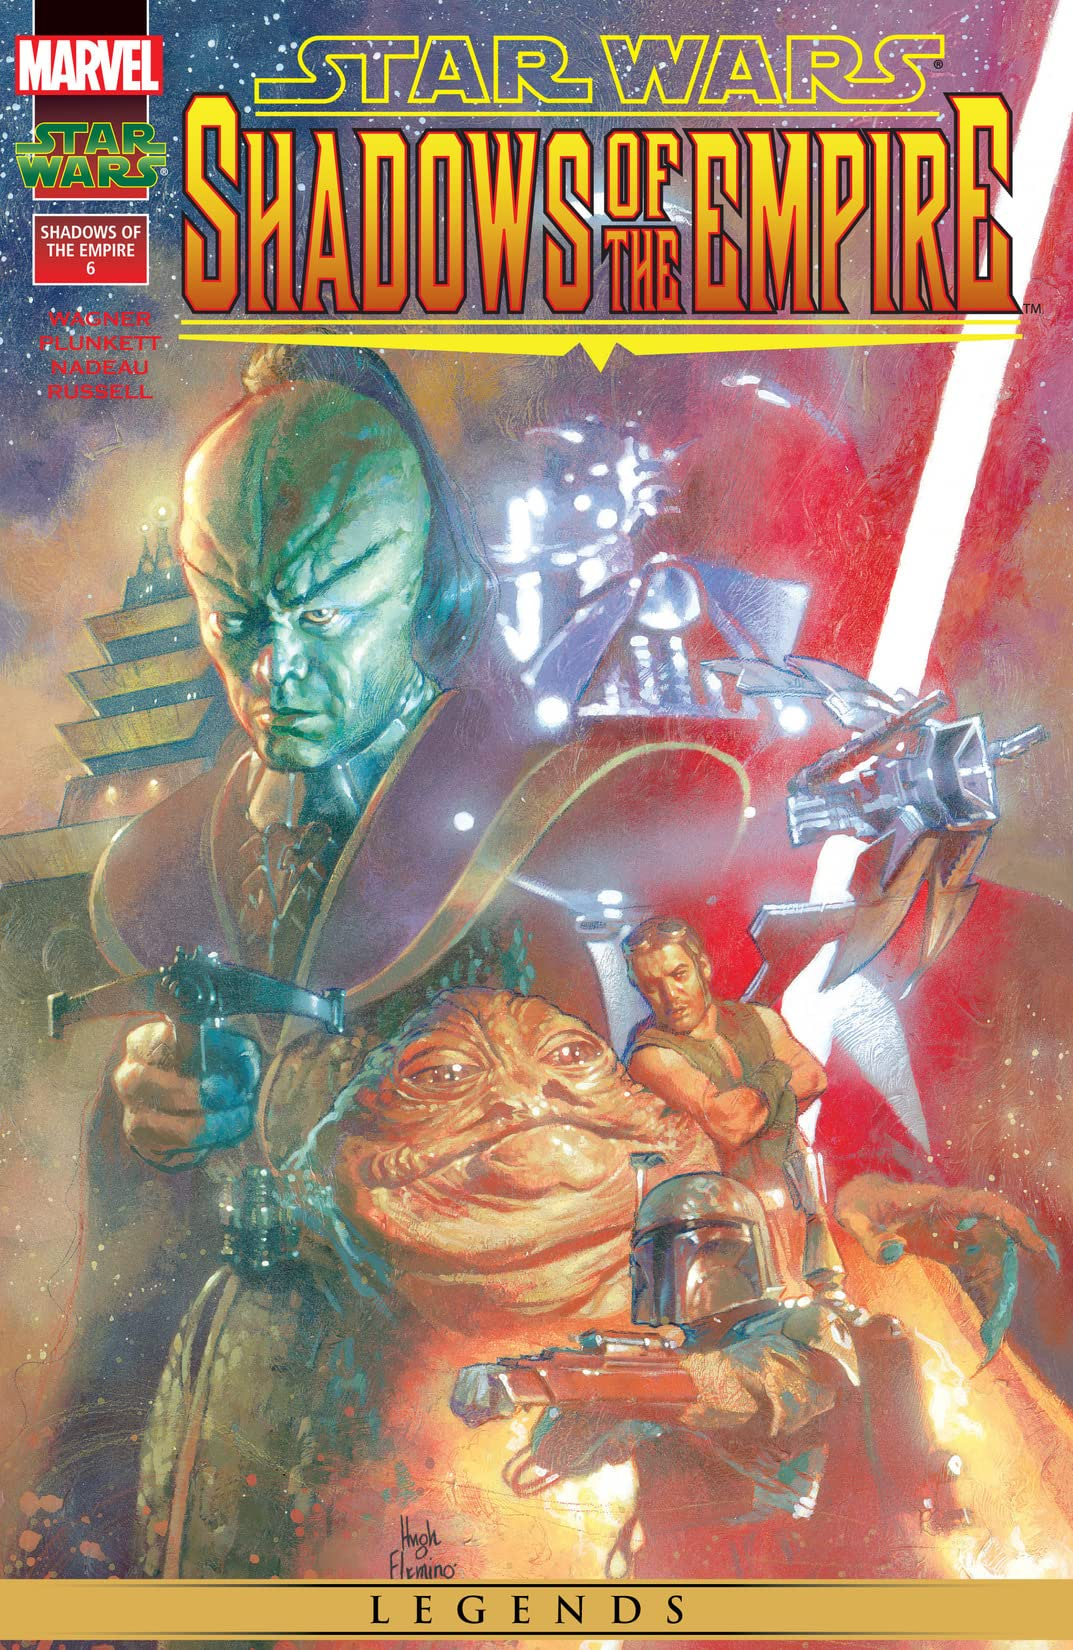 Star Wars: Shadows of the Empire (1996) #6 (of 6)